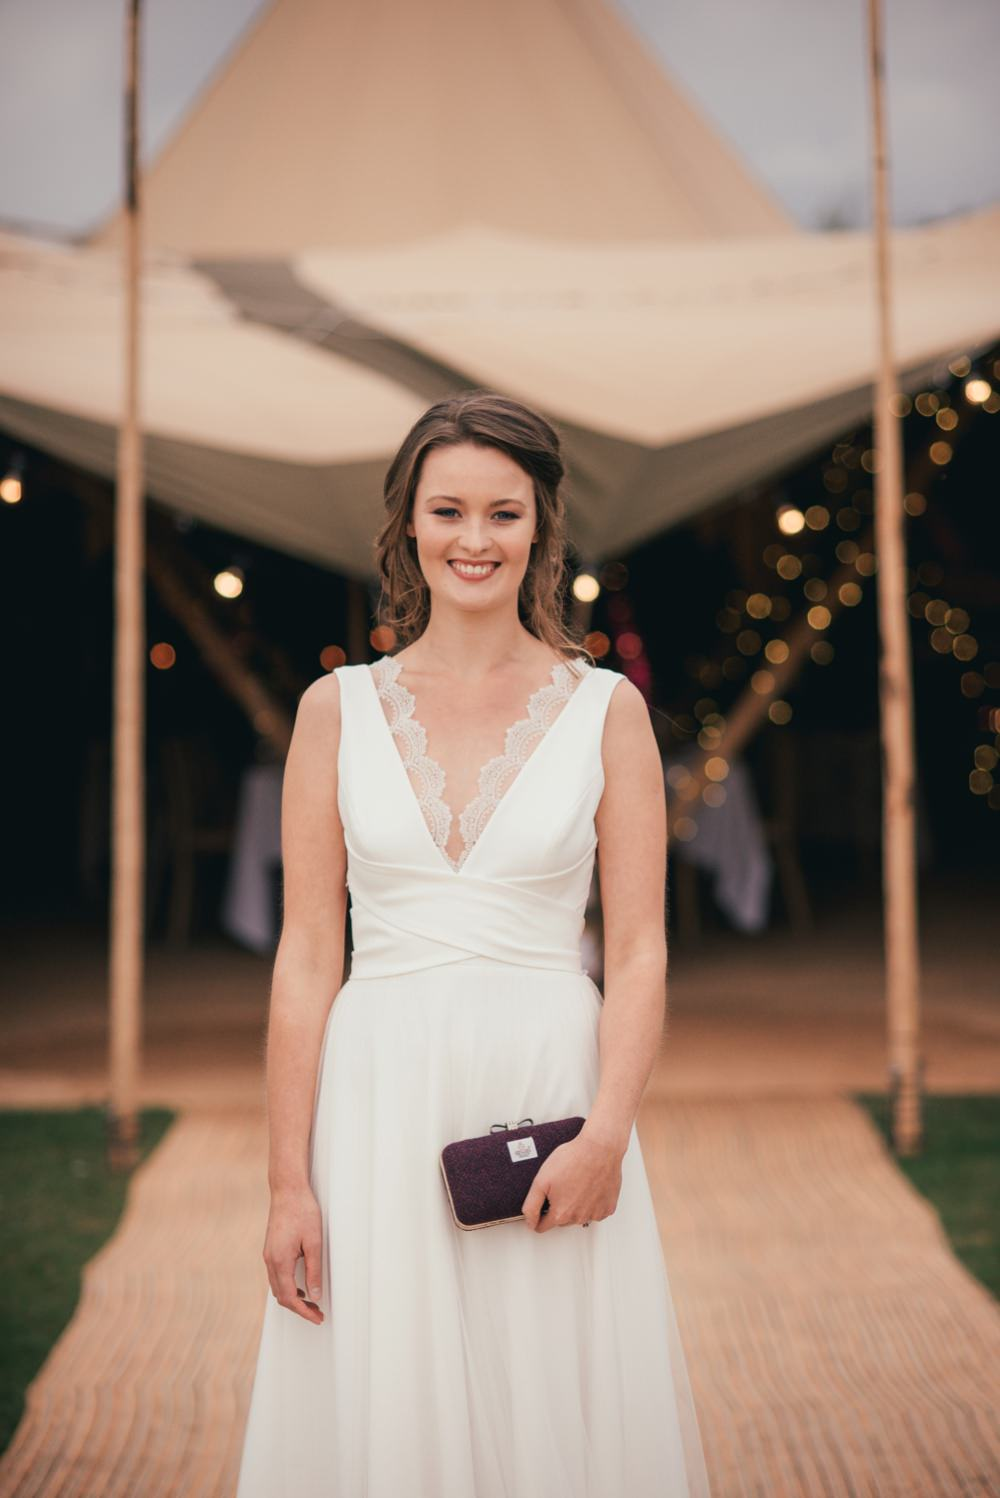 Charlie Brear and Jesus Peiro For a Sophisticated Vineyard Inspired Tipi Shoot by Lucy G Photography - Adored Bride_0036